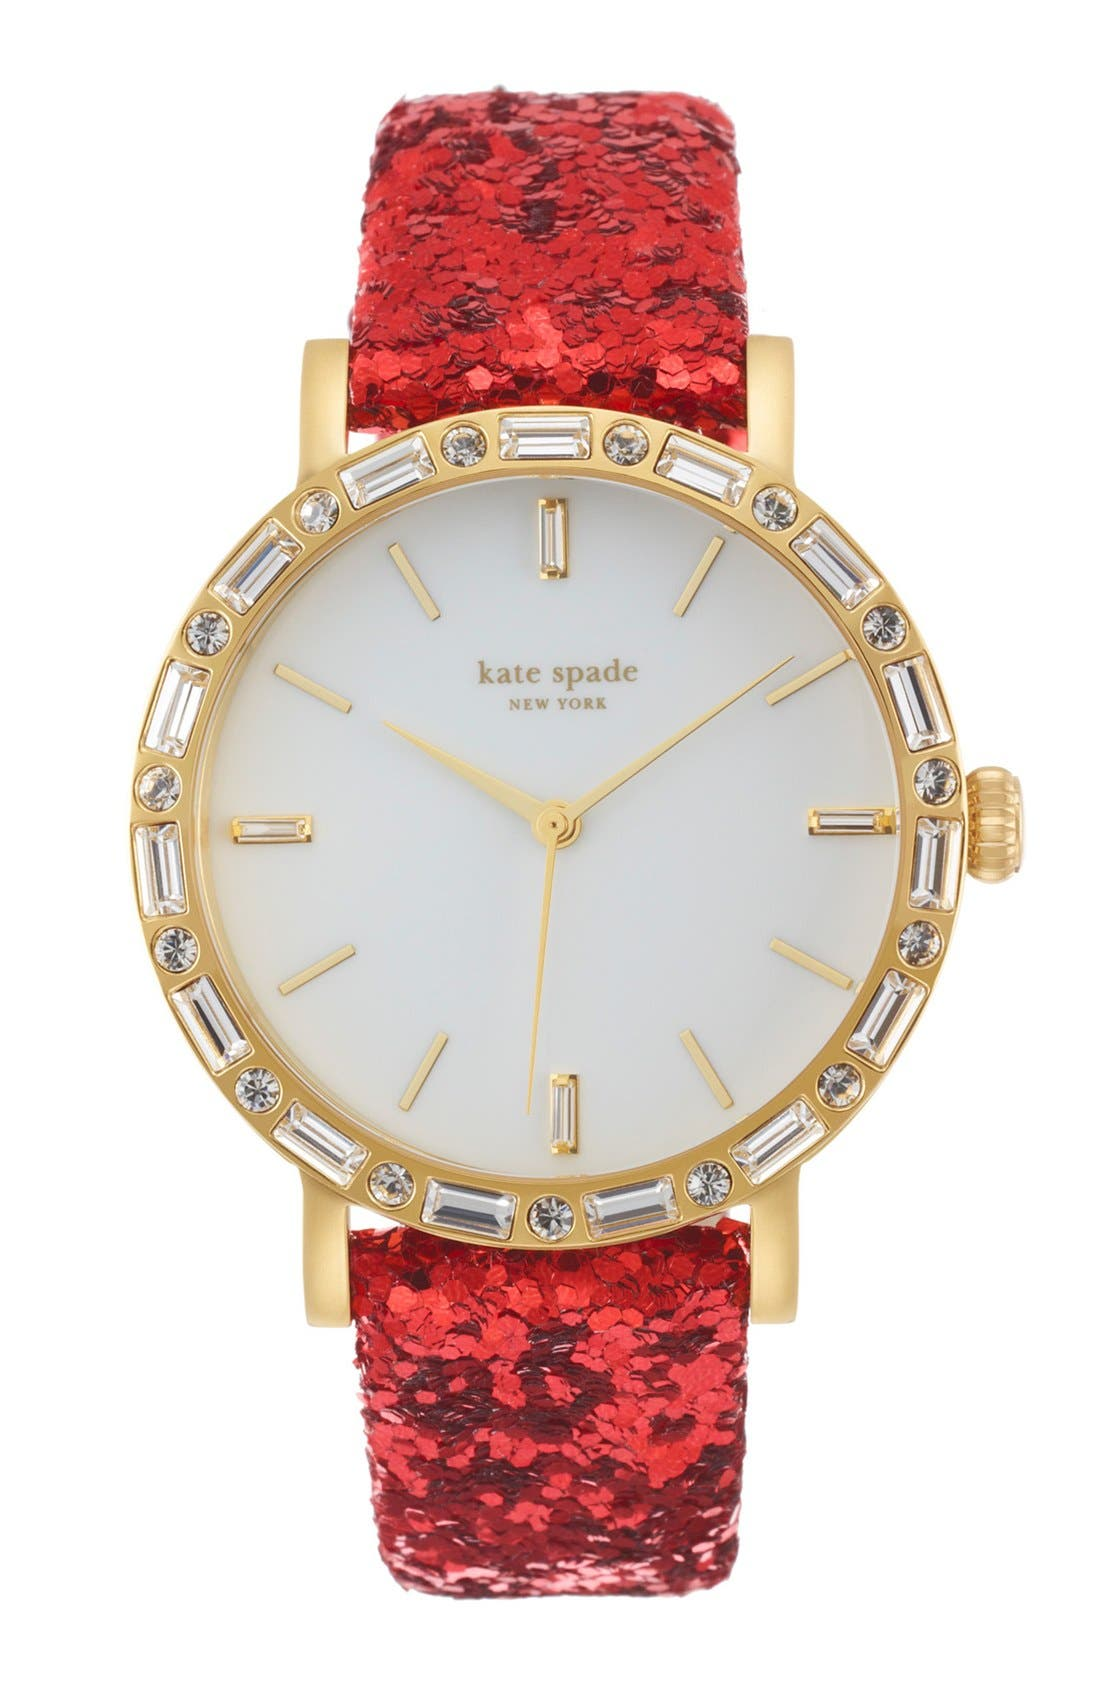 KATE SPADE NEW YORK,                             'metro' crystal bezel watch & straps set, 38mm,                             Alternate thumbnail 2, color,                             001